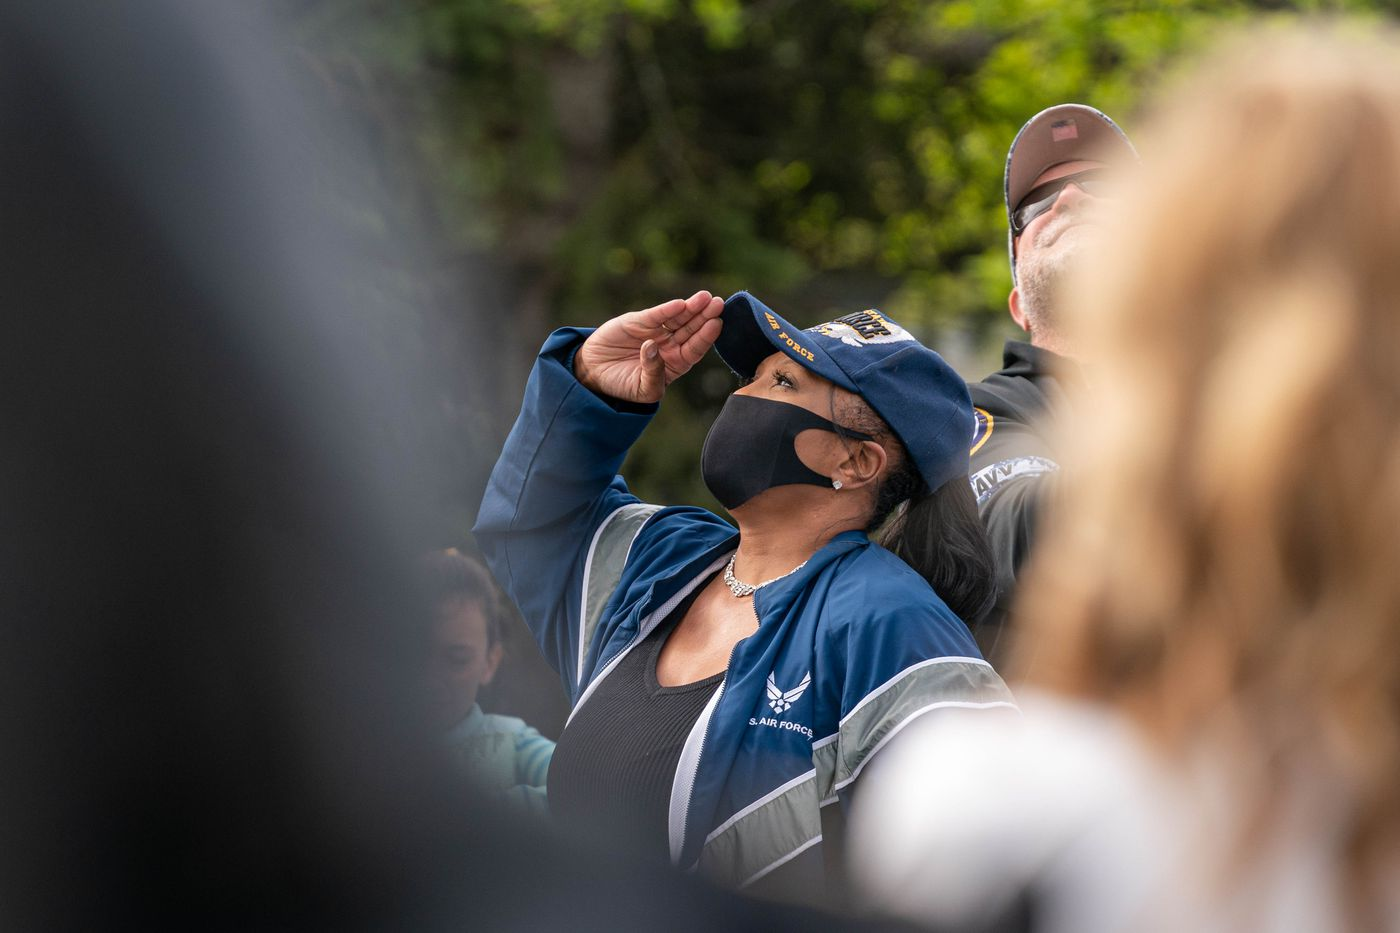 Air Force veteran Louise Williams salutes the flag at the Anchorage Veterans Memorial on Delaney Park Strip on Monday, May 25, 2020 during a Memorial Day observance. (Loren Holmes / ADN)